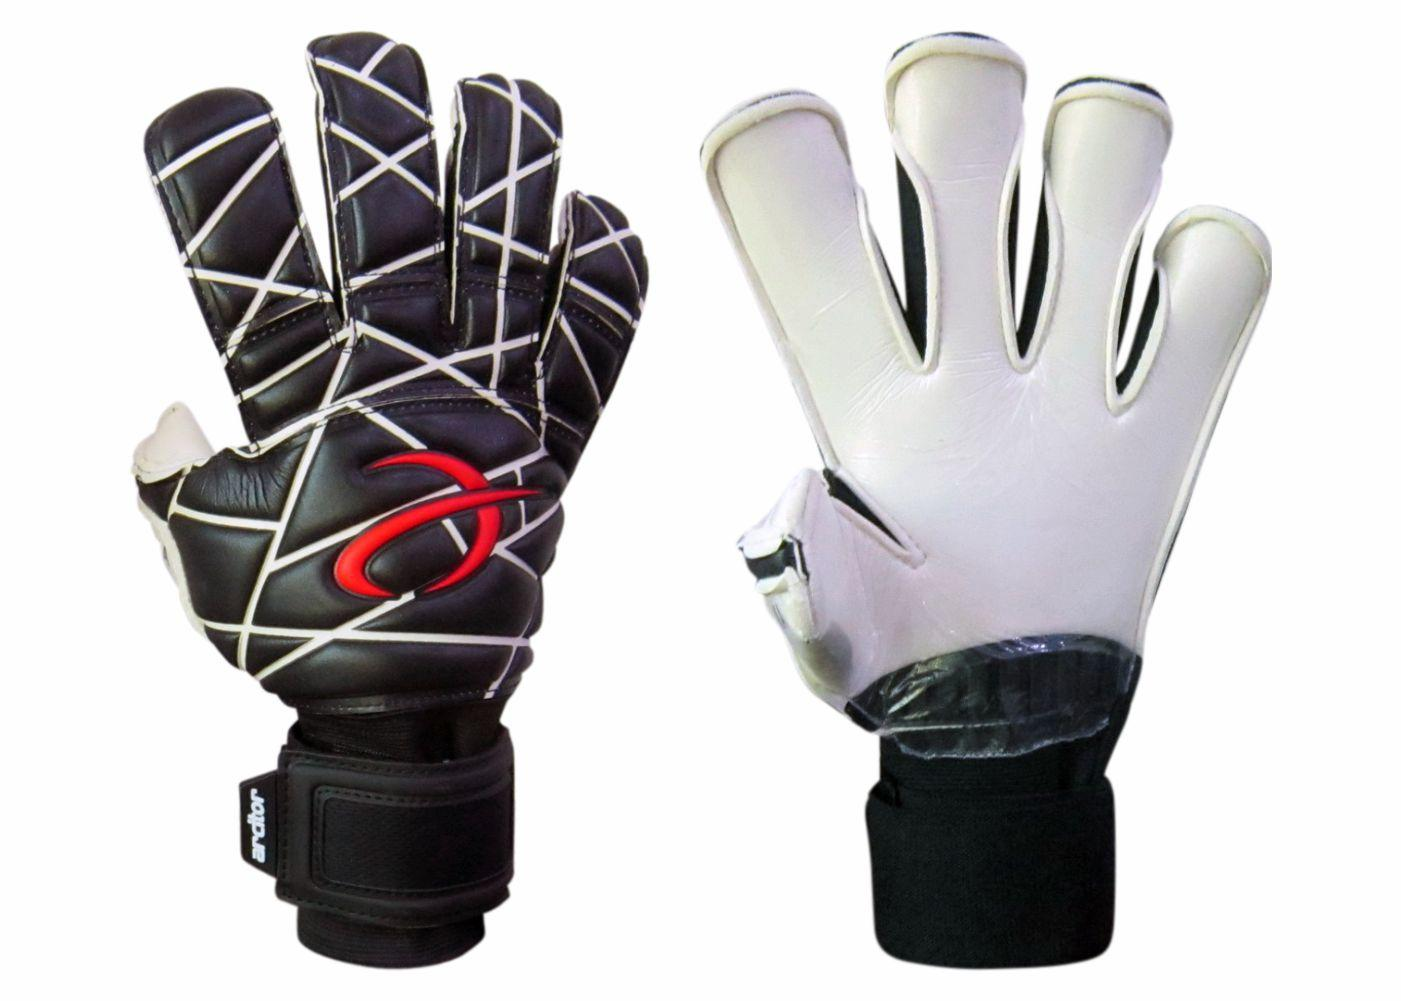 matka gk gloves